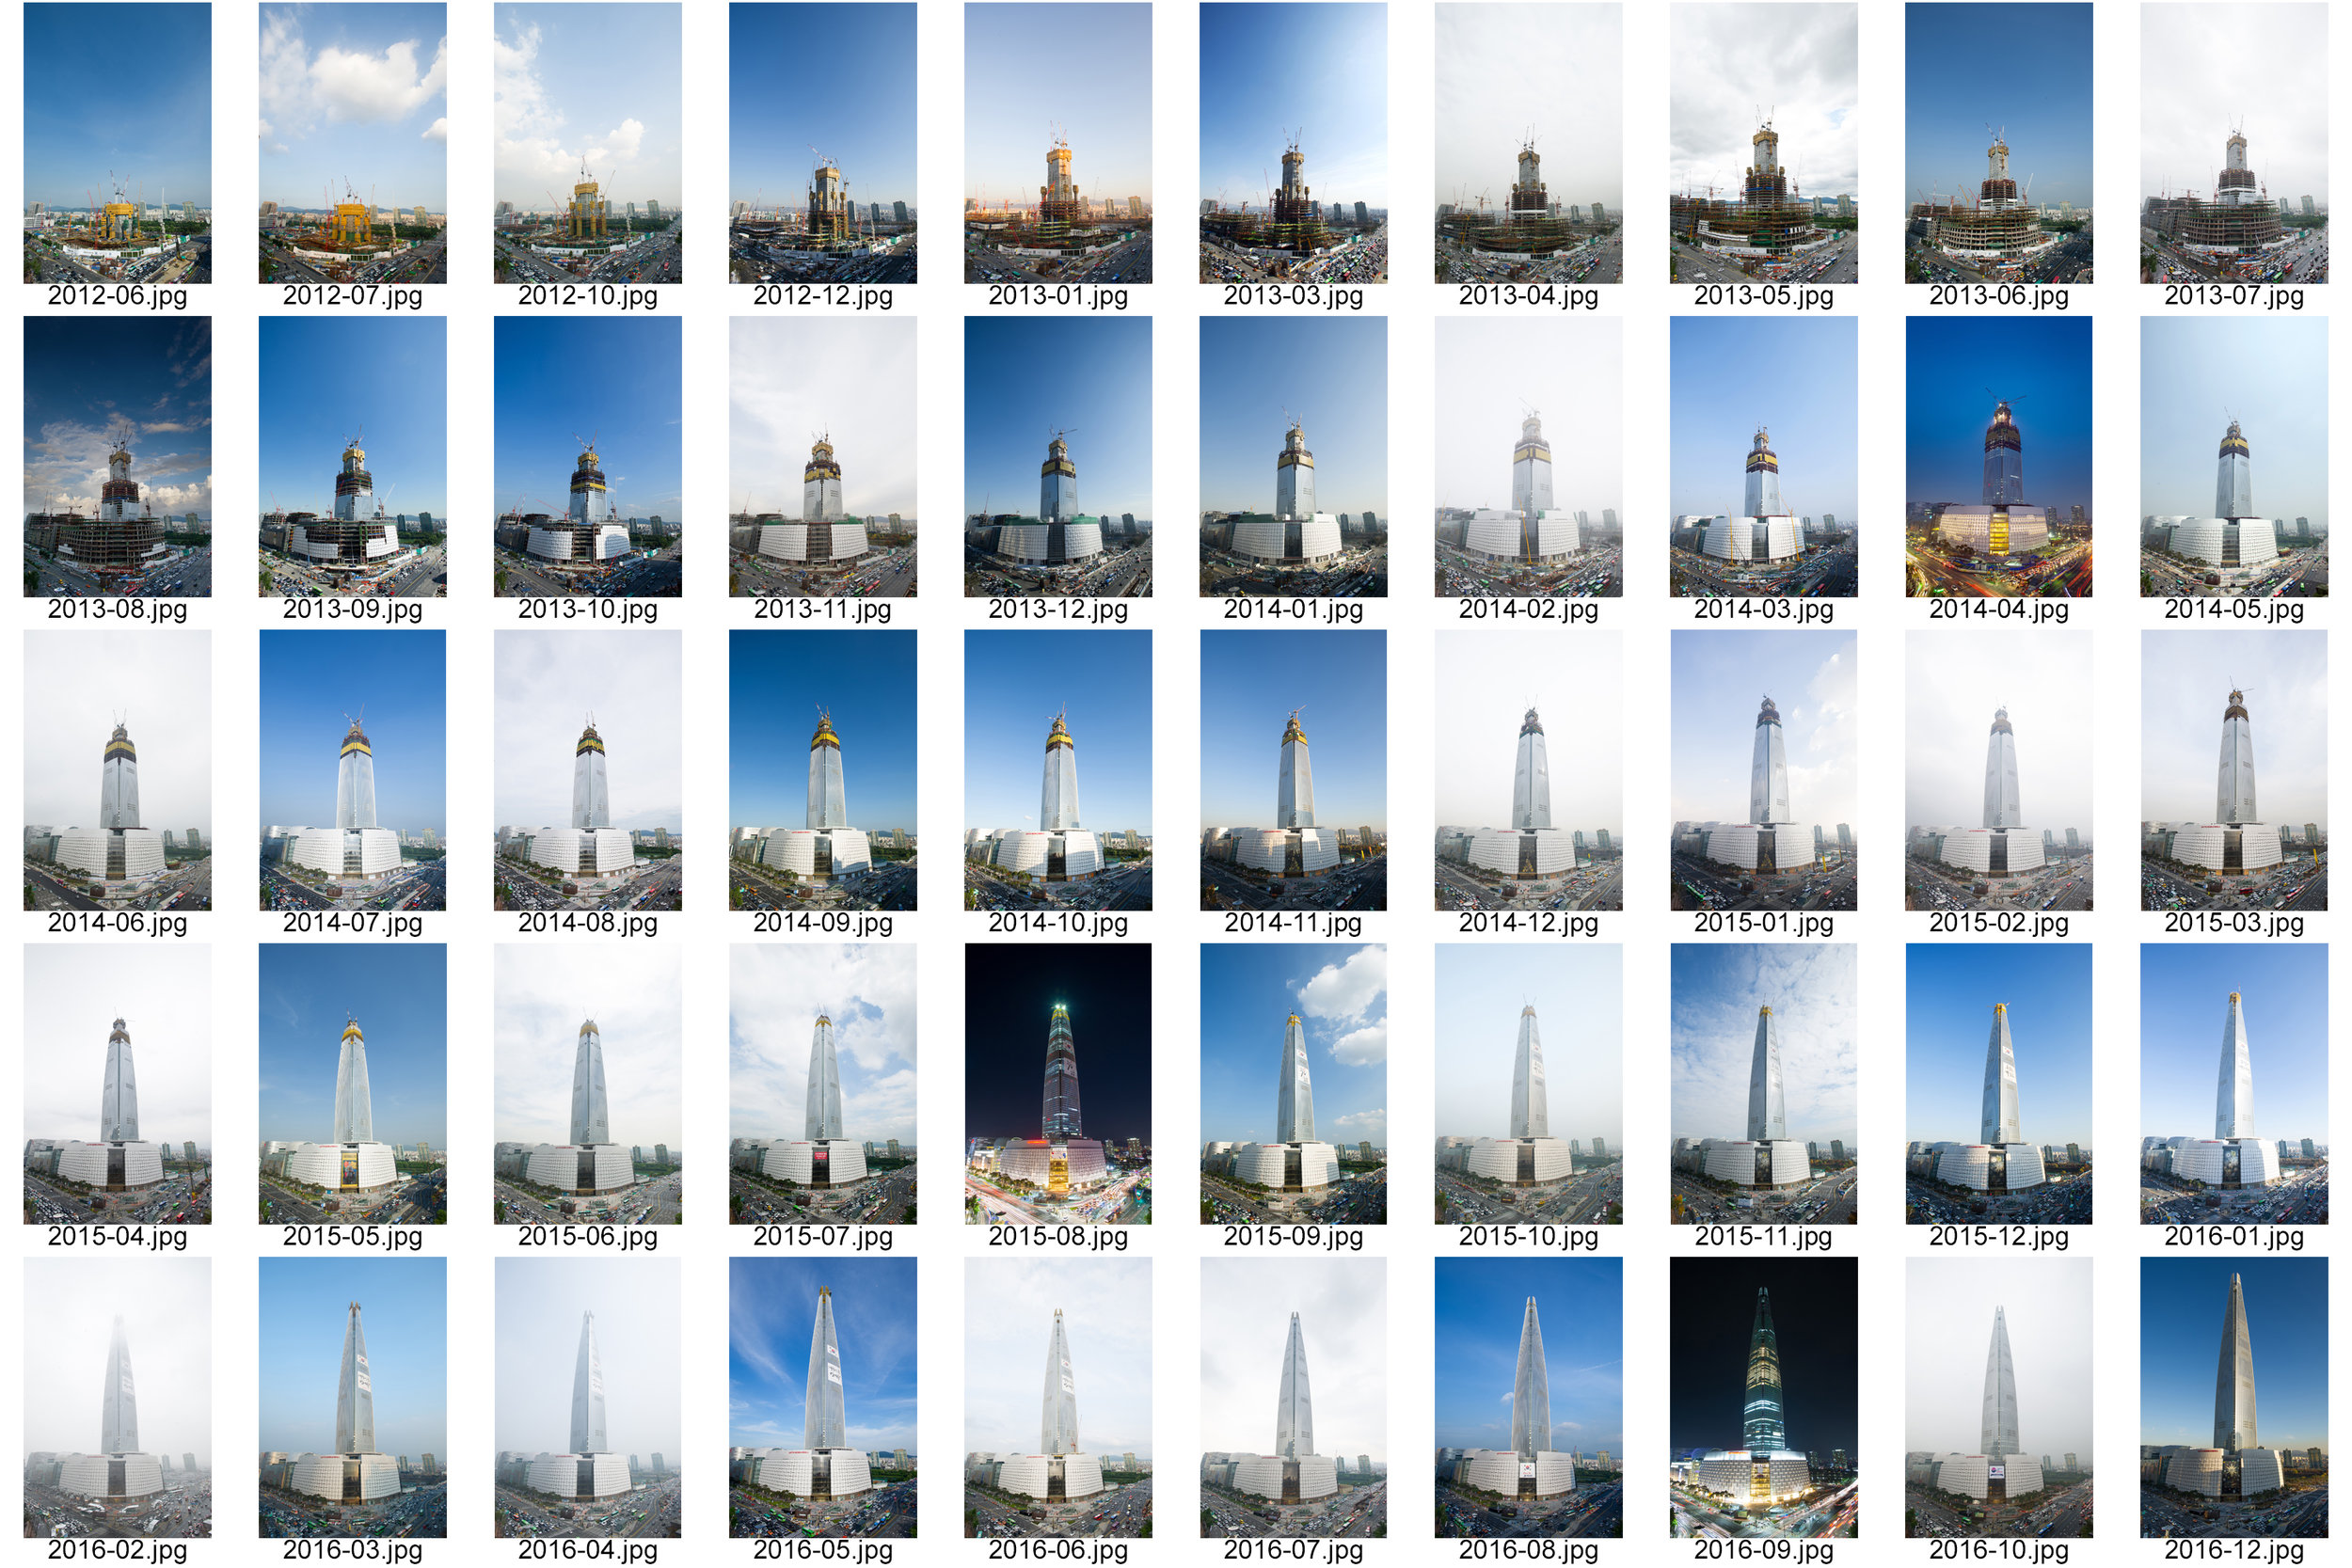 Lotte World Tower (2012 ~ 2016)